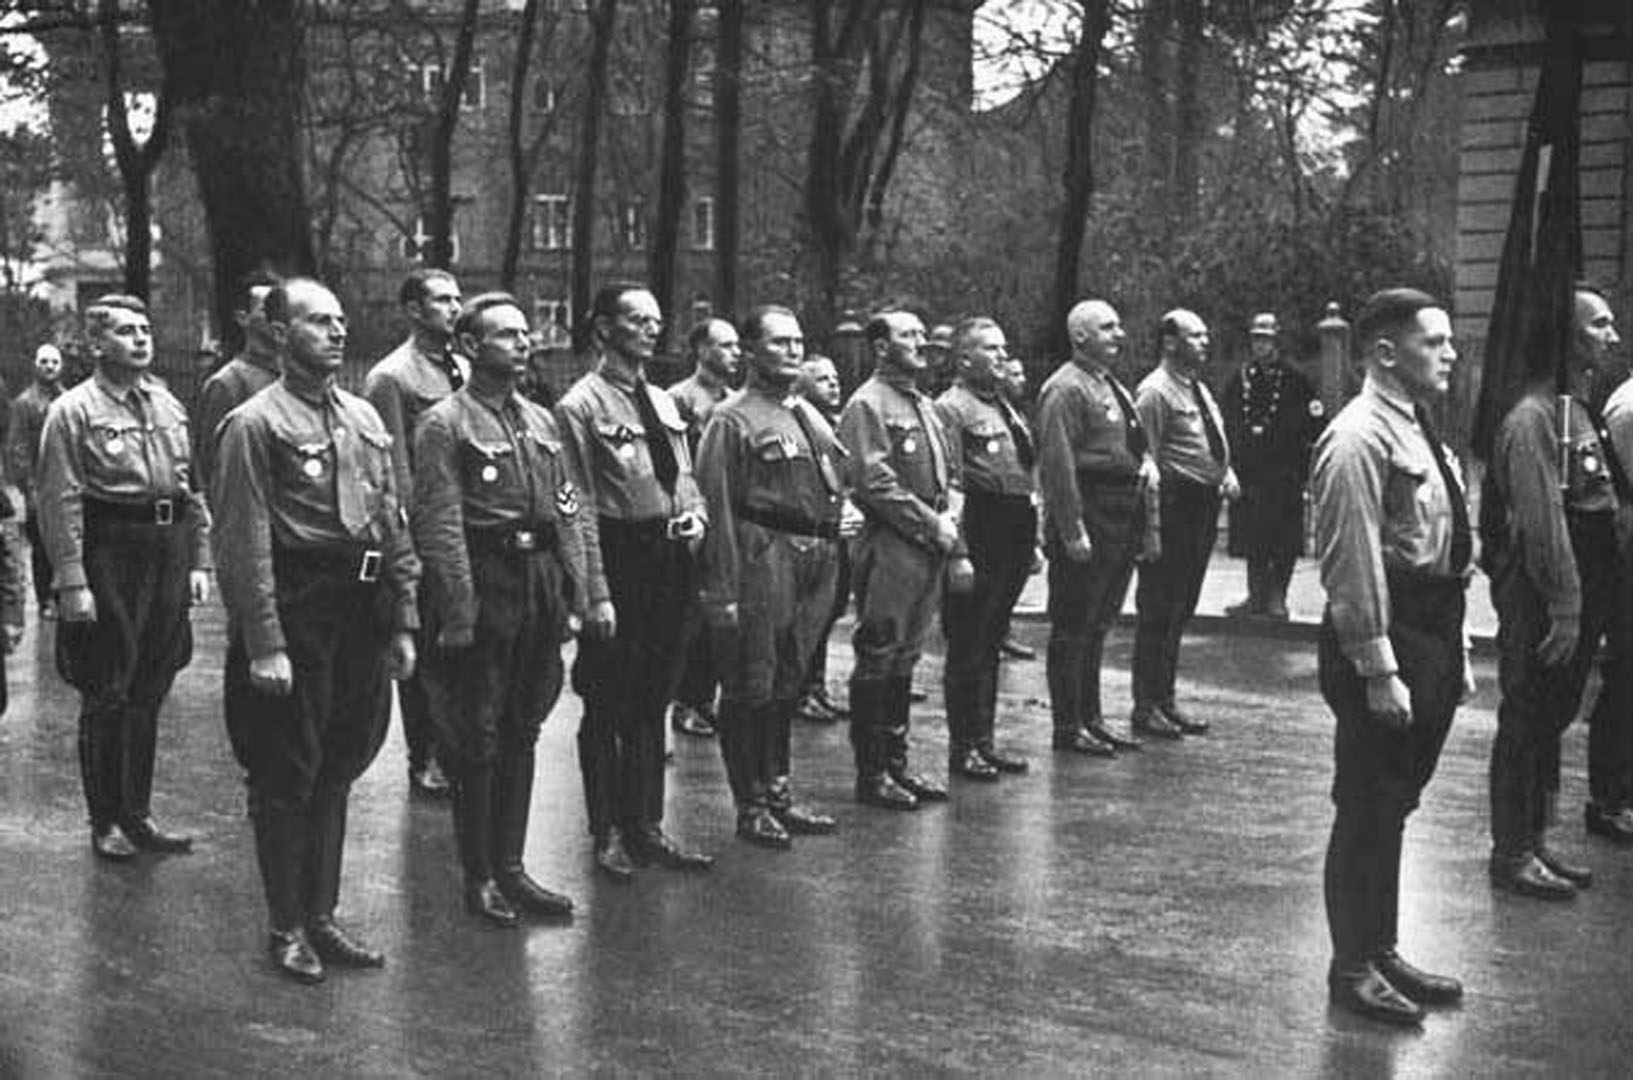 Soldiers Including Hitler Standing In Line - Nazi Third Reich Wallpaper